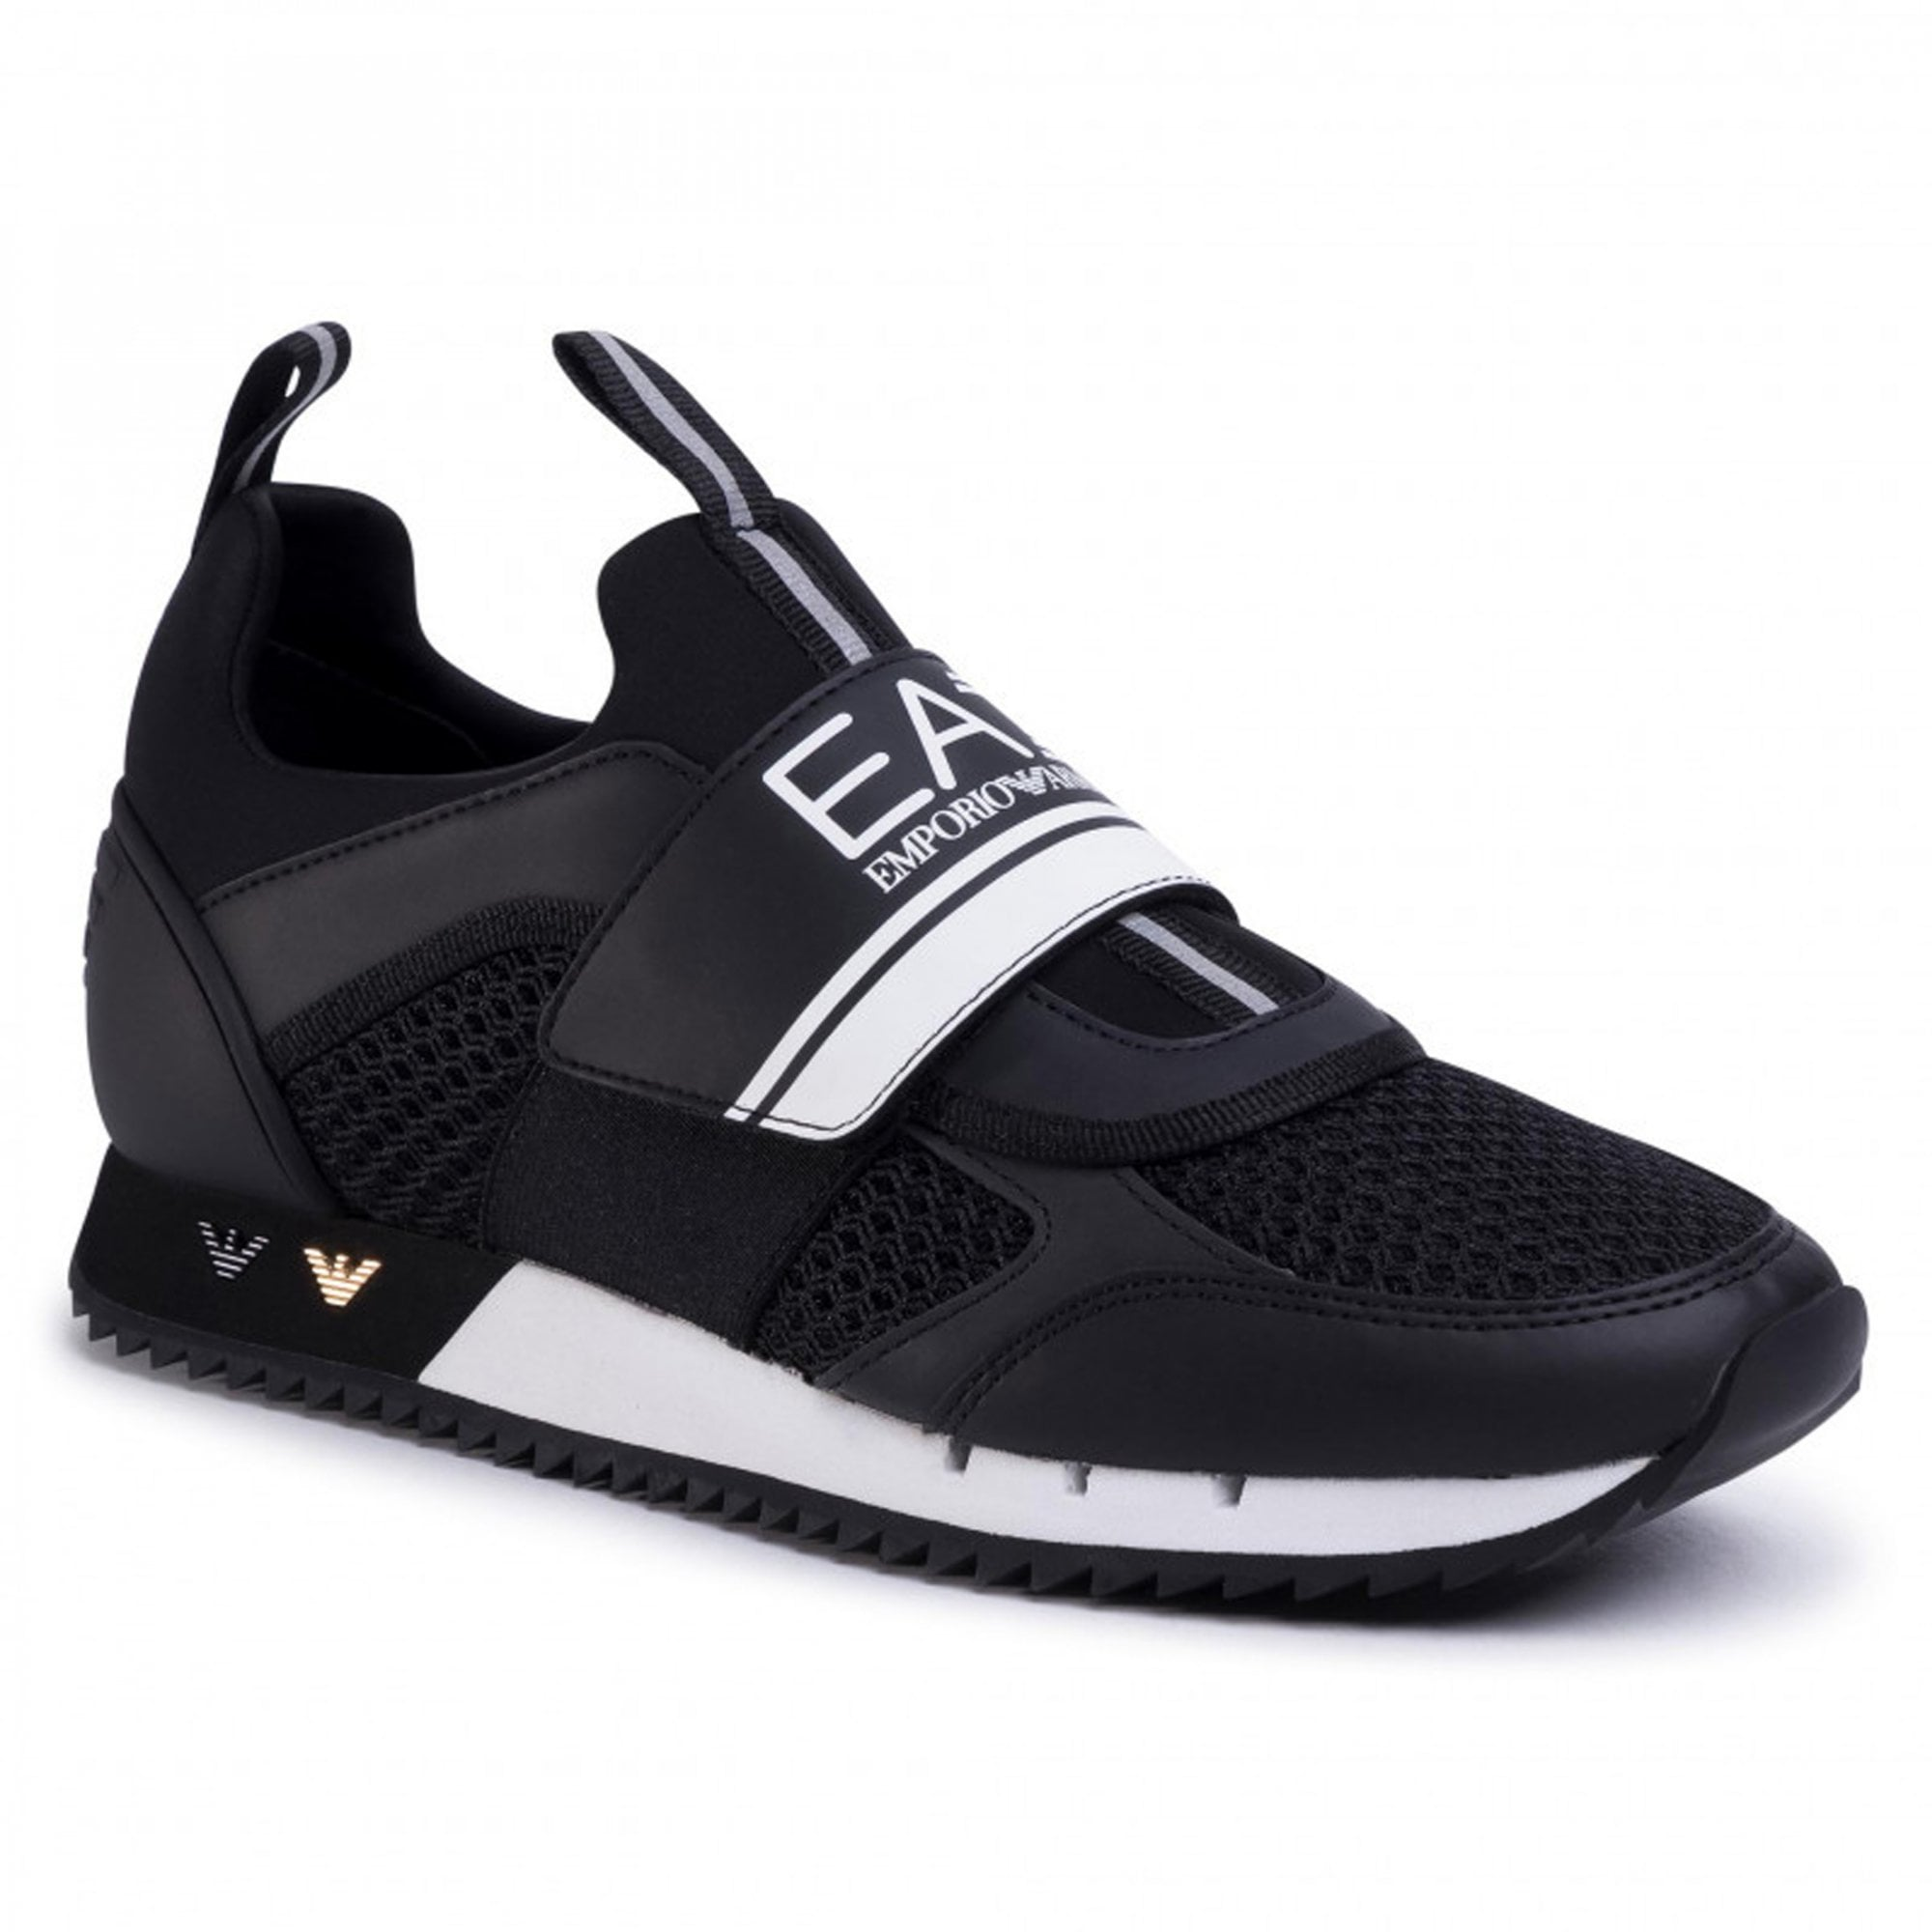 armani velcro runner trainers, OFF 70%,Buy!